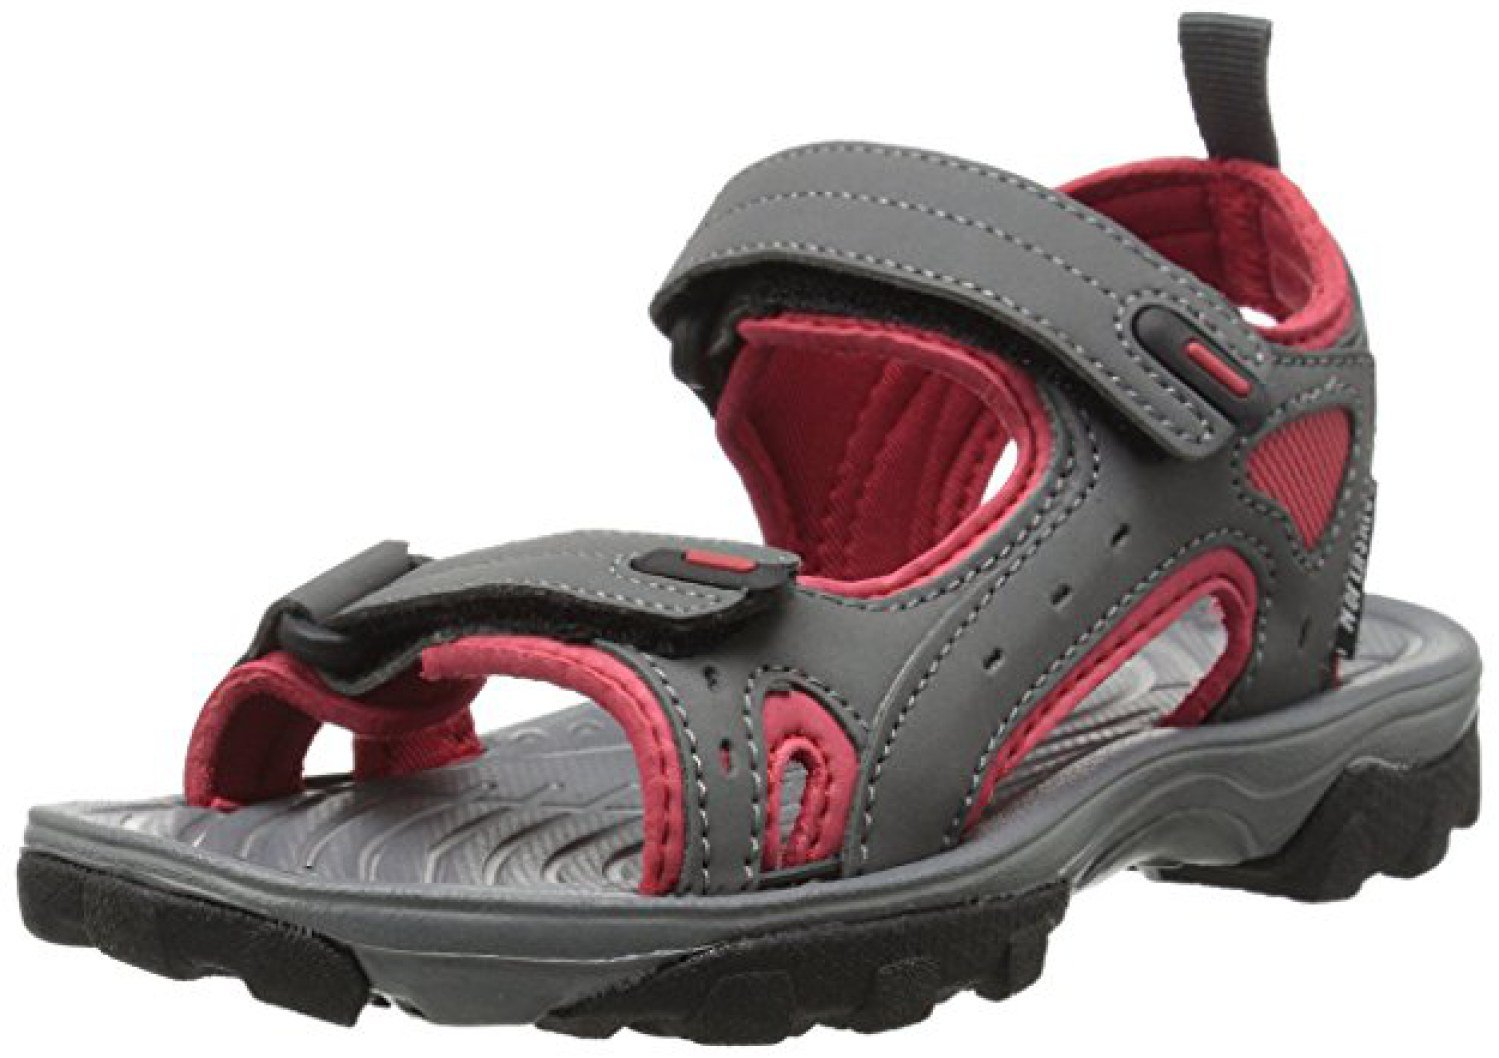 Northside Kid's Riverside II Summer Sandal, Gray/Red, 6 M US Big Kid; with a Waterproof Wet Dry Bag